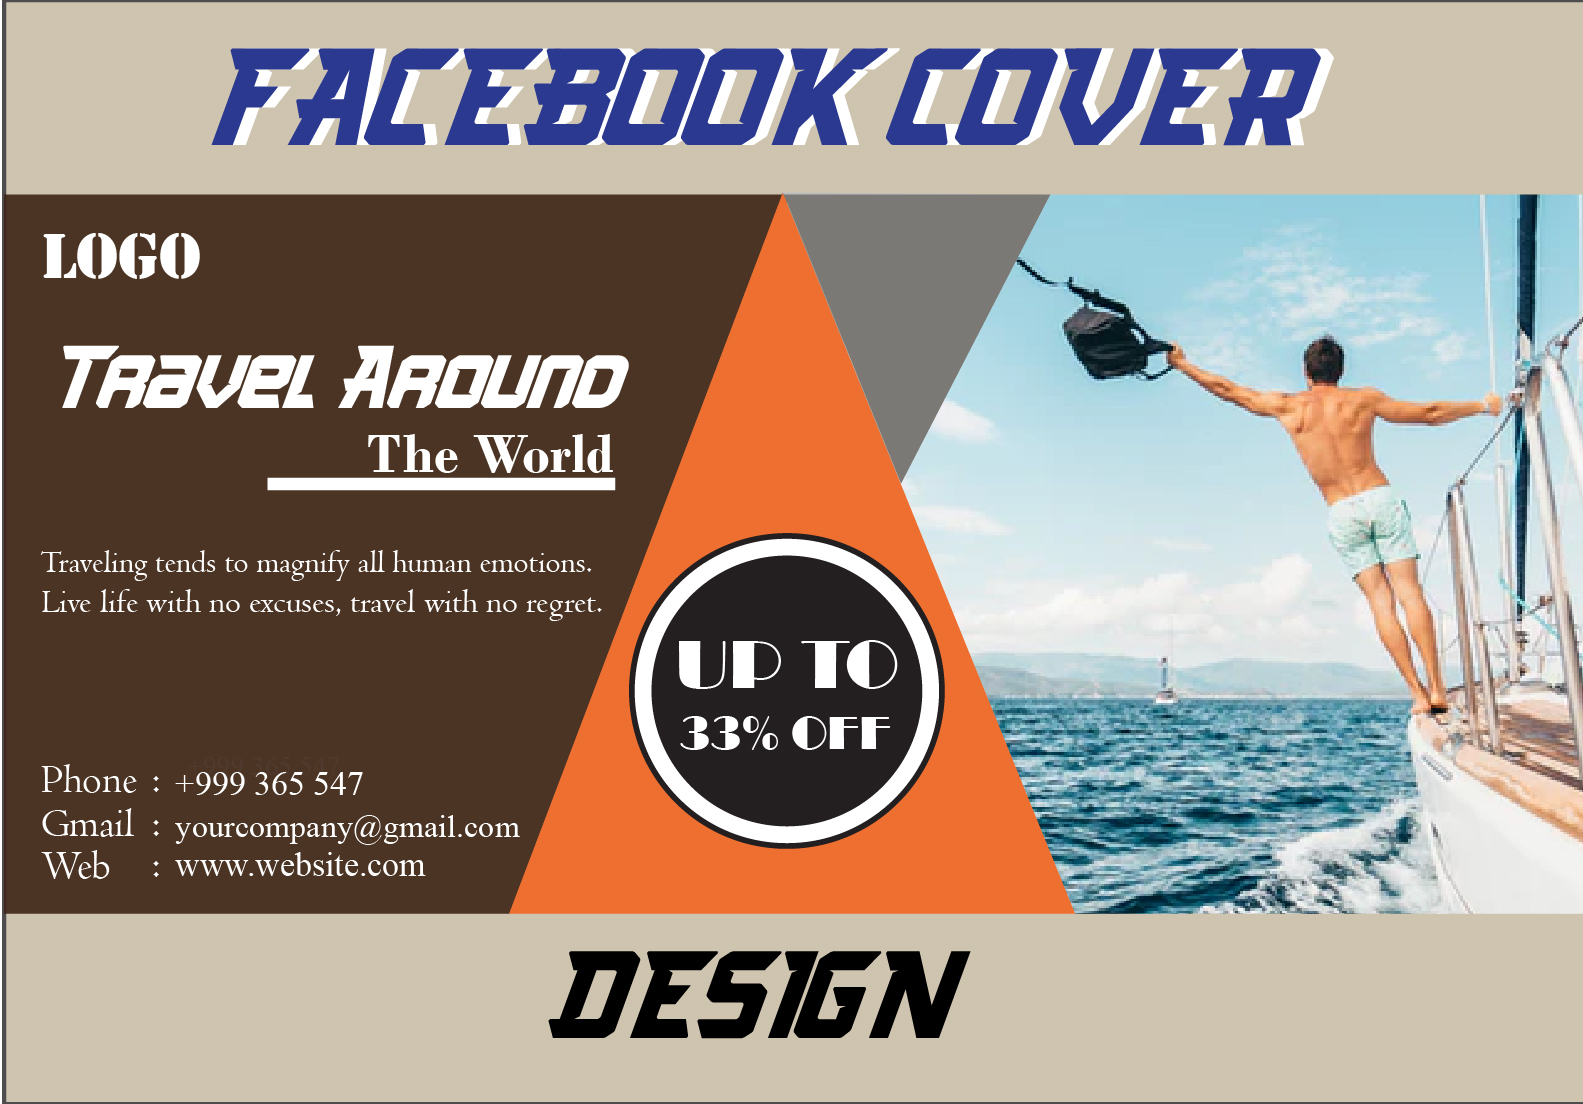 I will design amazing professional Facebook Cover/Banner photo design for you.